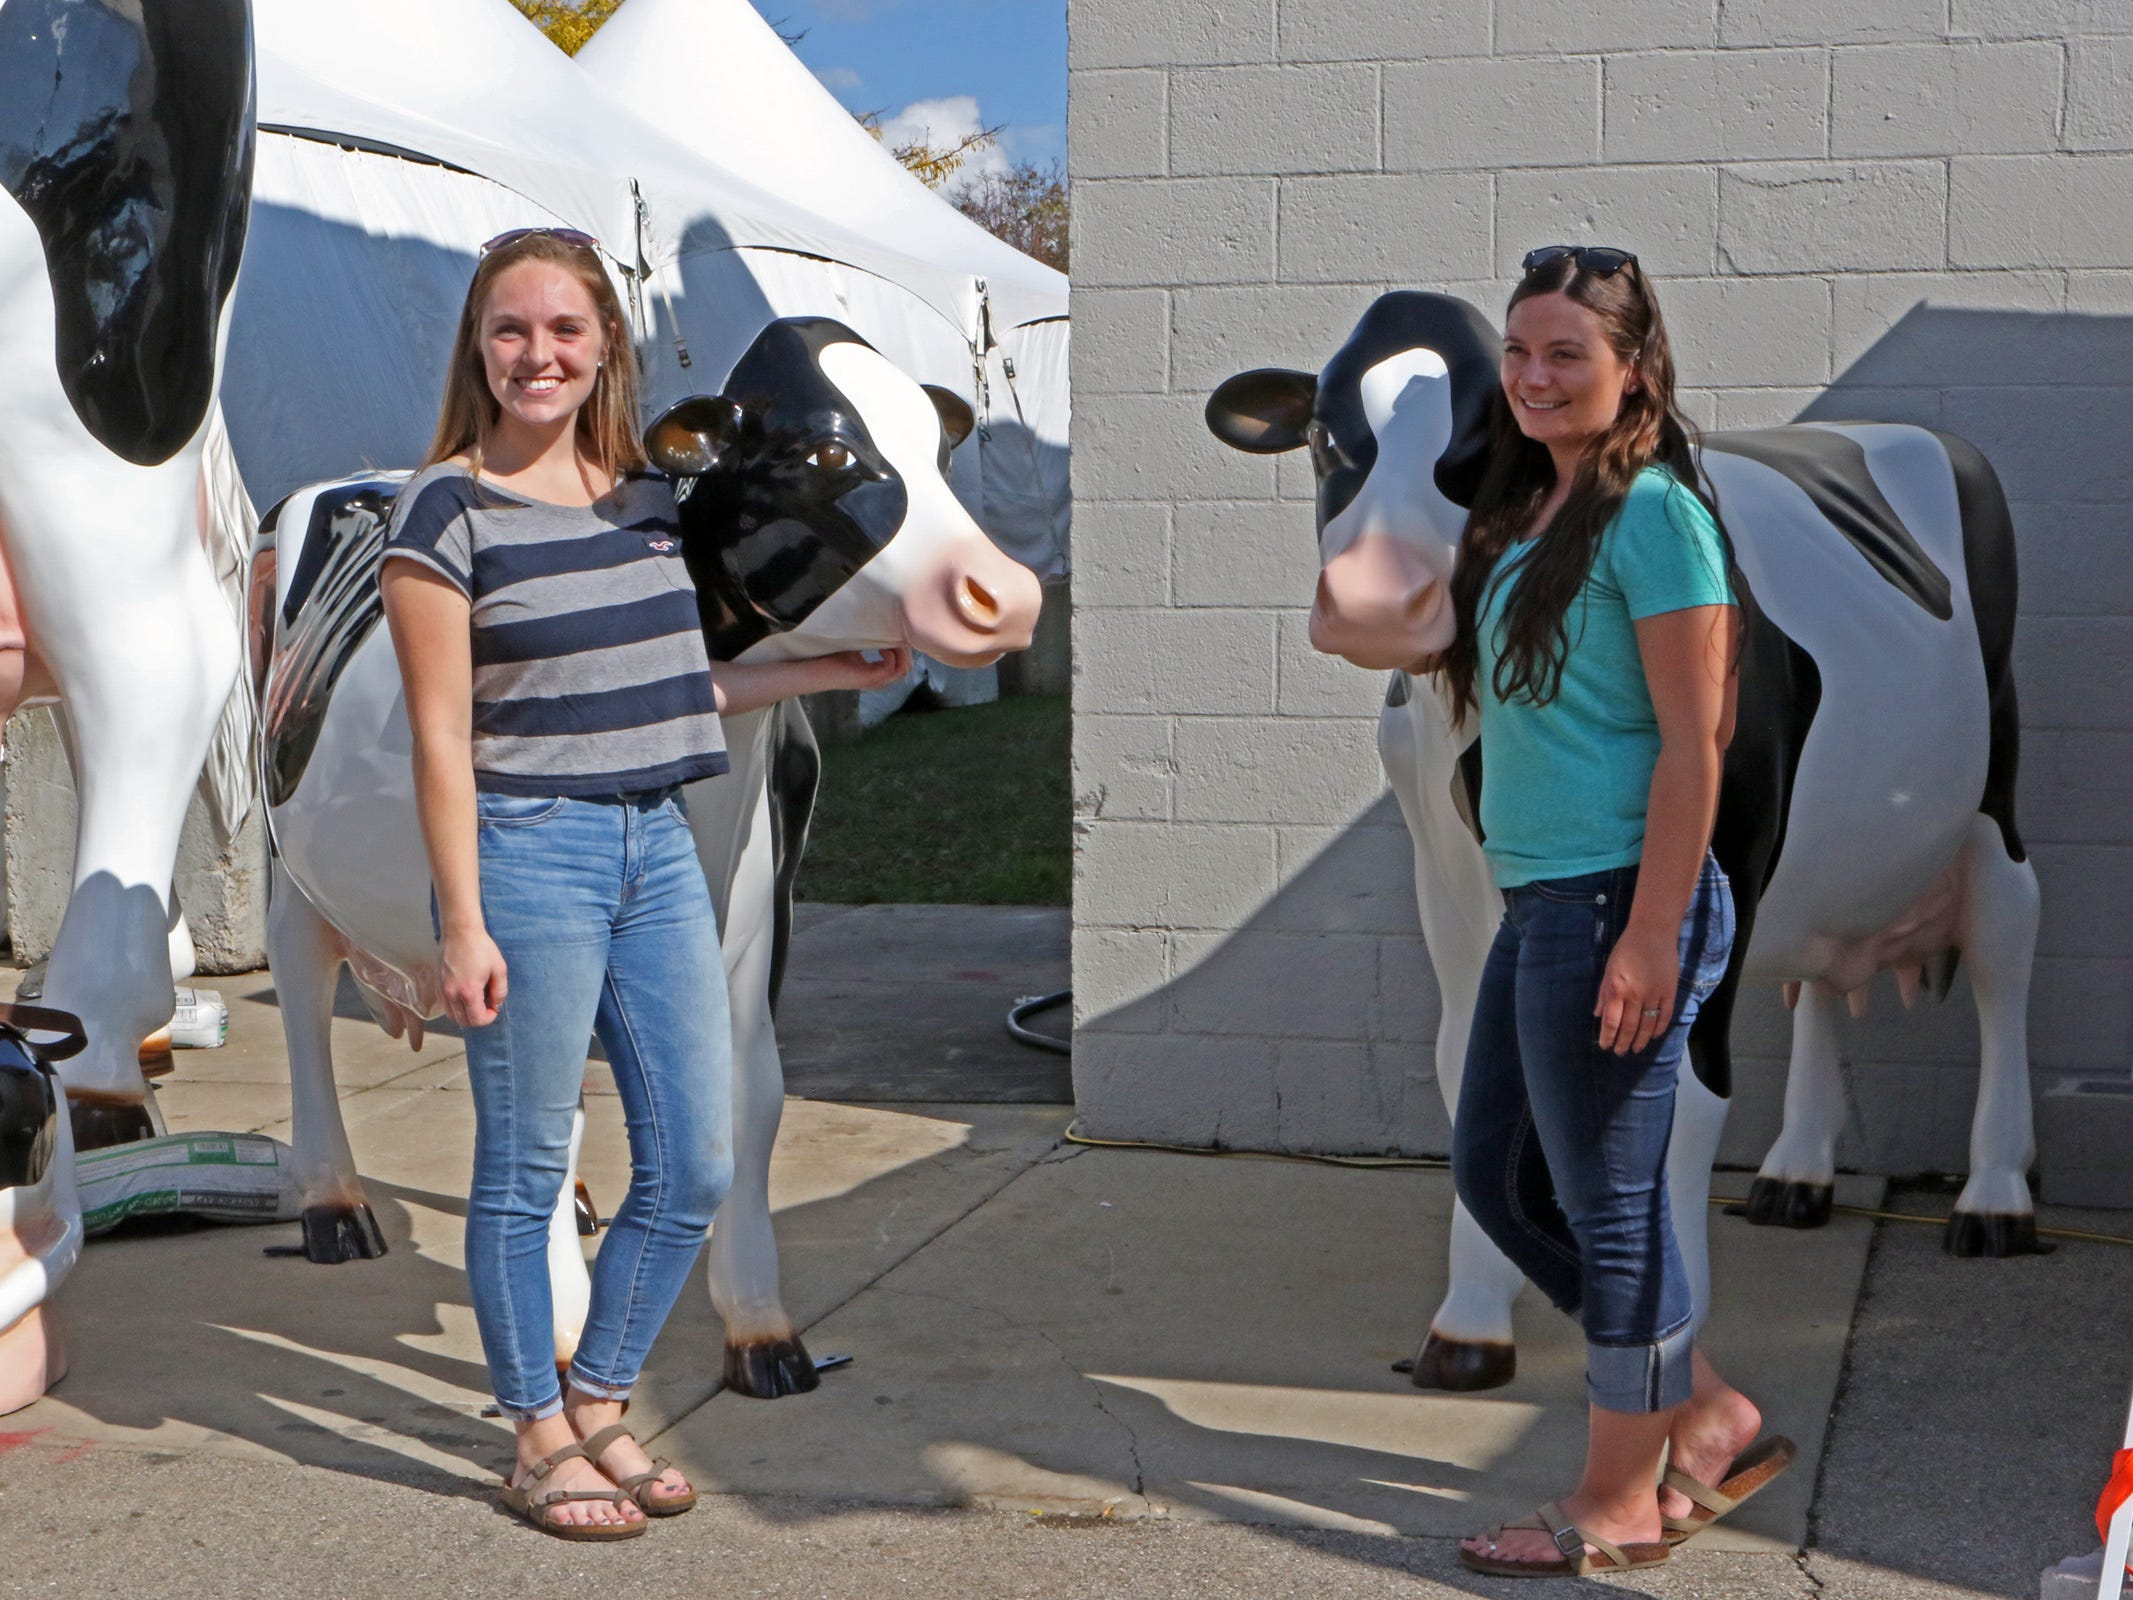 Karissa Vance (left) AND Marissa Olson, both from Oconomowoc, express their love of cows through a photo during World Dairy Expo on Oct. 3 in Madison.